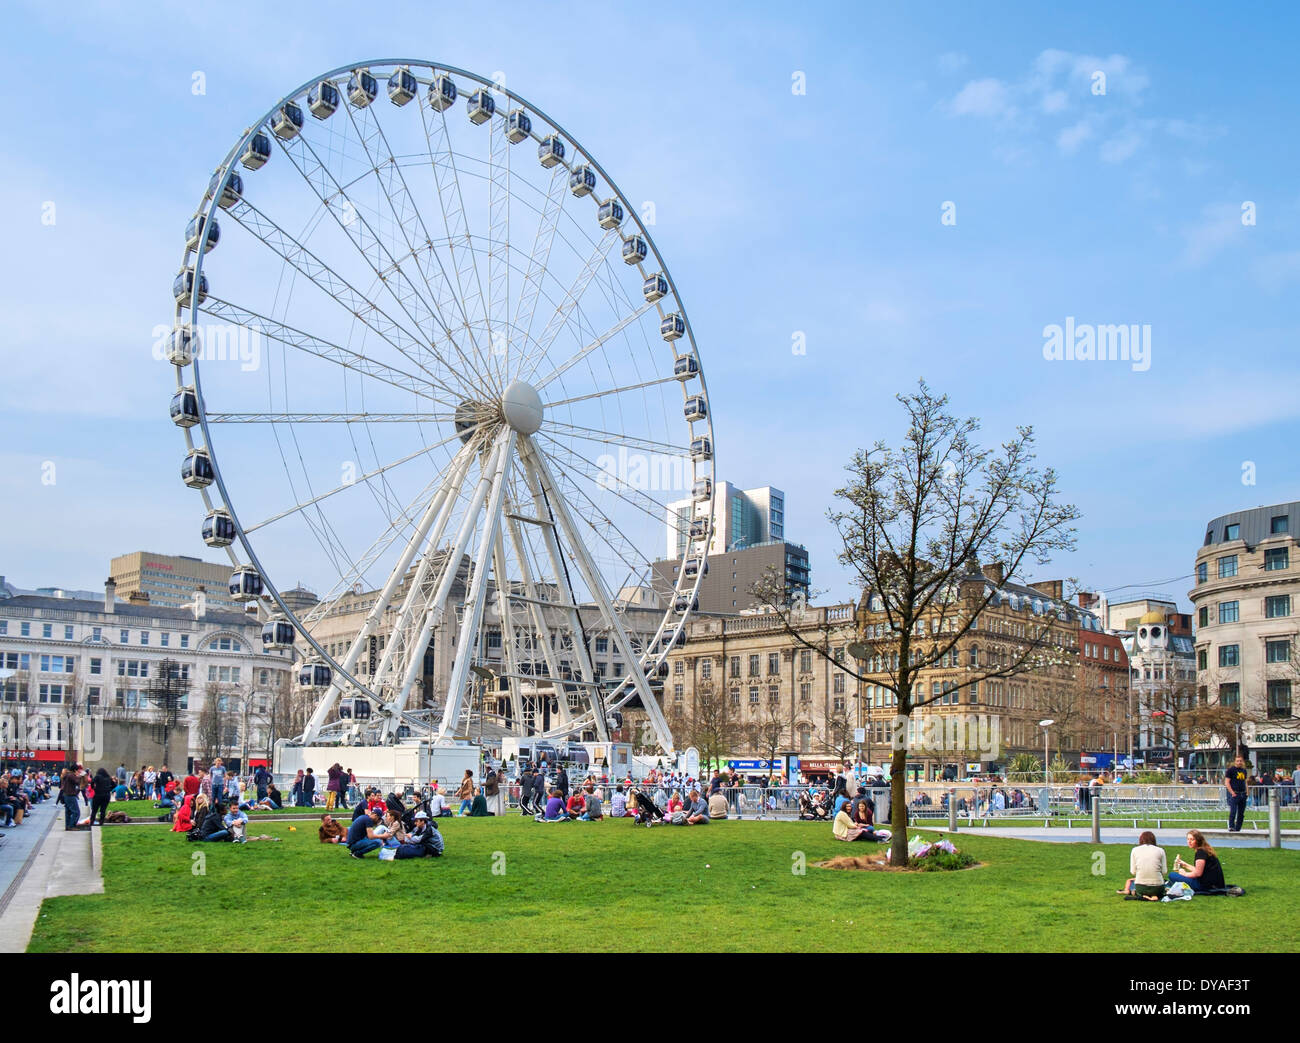 The Wheel of Manchester, Piccadilly Gardens, Manchester, England, UK - Stock Image